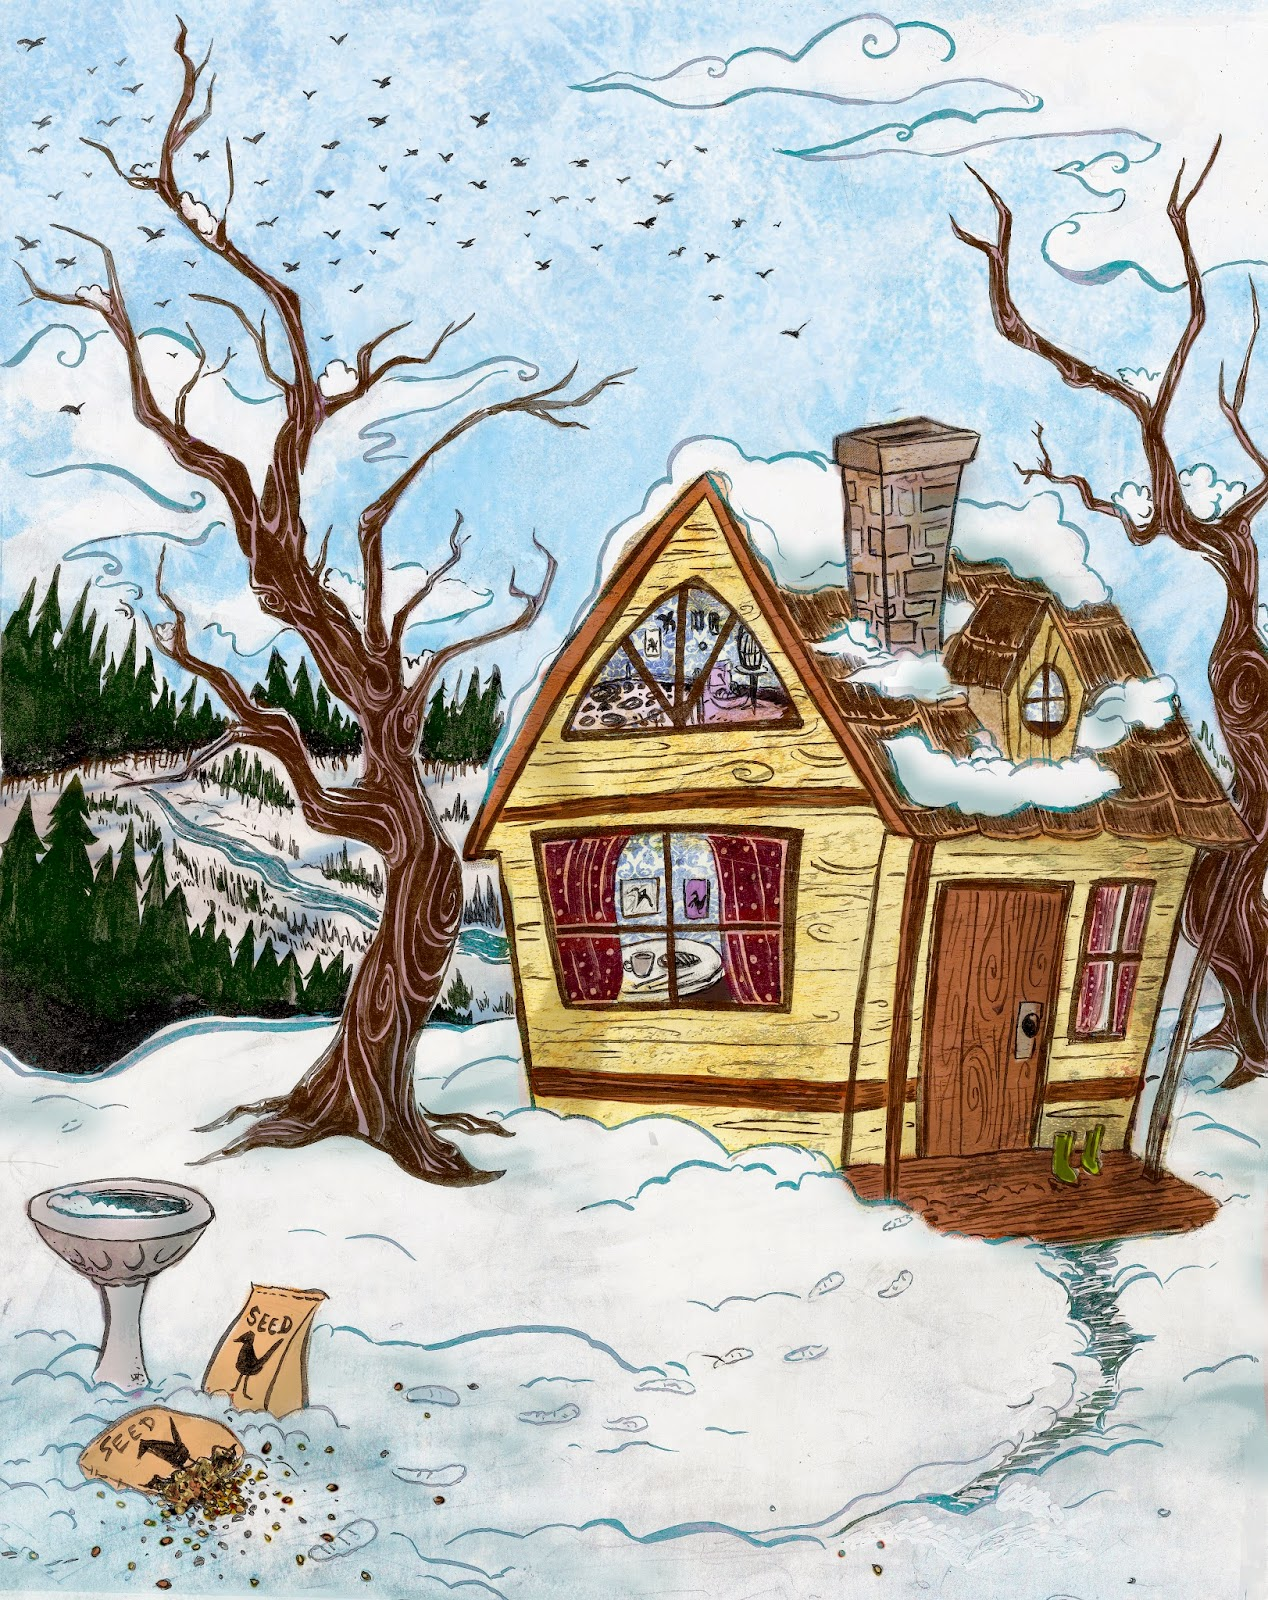 Concept art for Ava and Efron's home.RobinAnnWren.2011